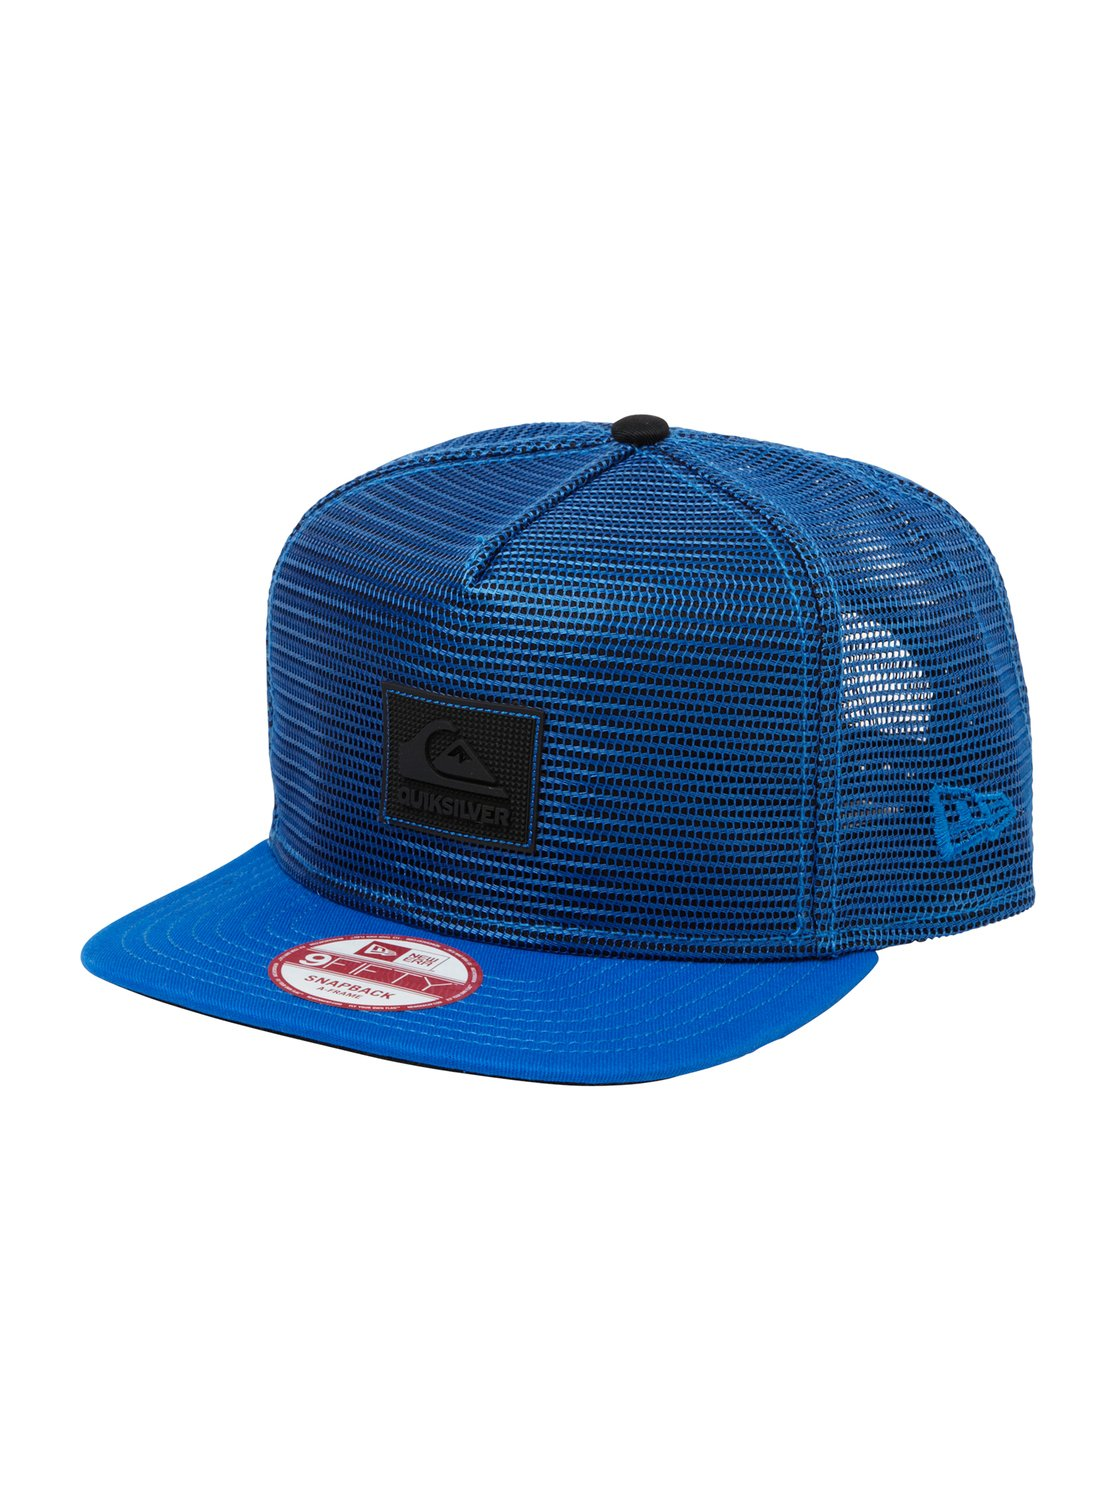 9ae14643ac9c3a ... discount code for 0 grit hat 852081 quiksilver 9f59a 8dc0e